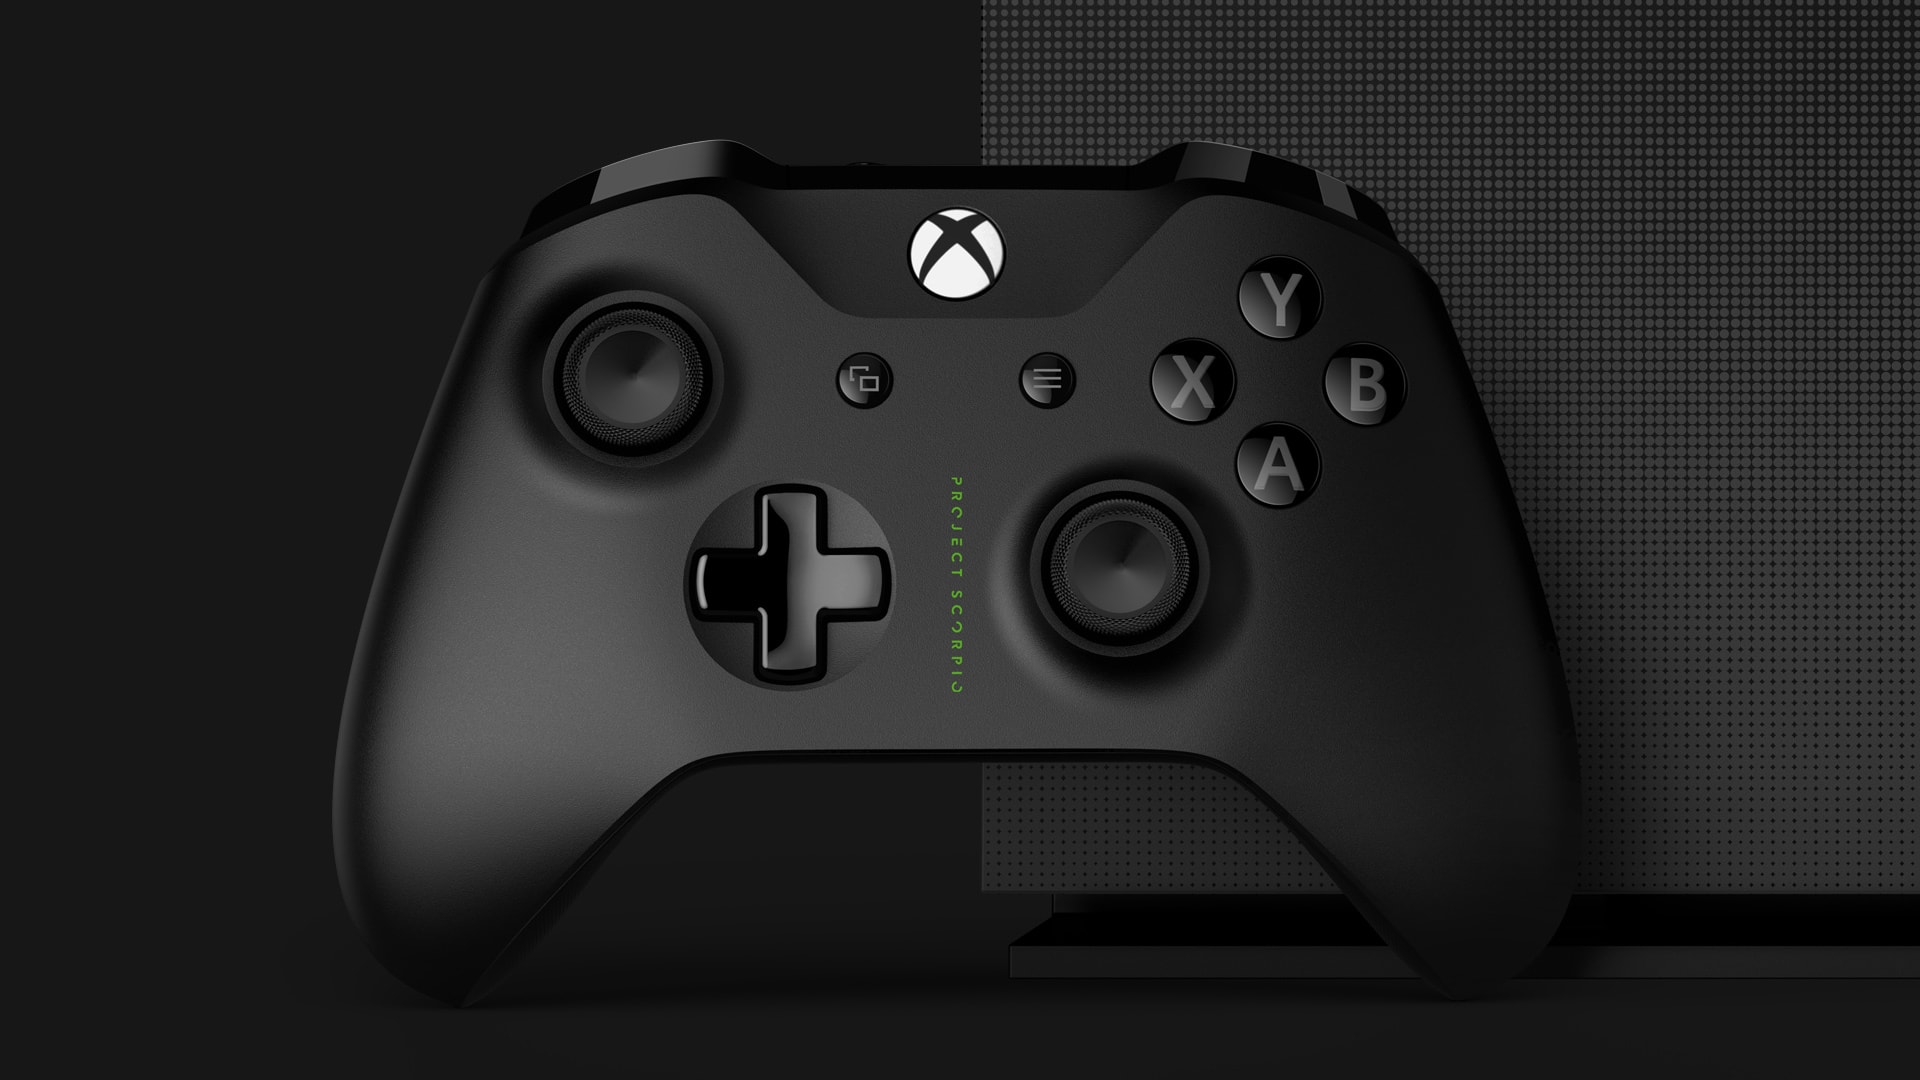 How to Enable 4K Settings, Download 4K Content on the Xbox